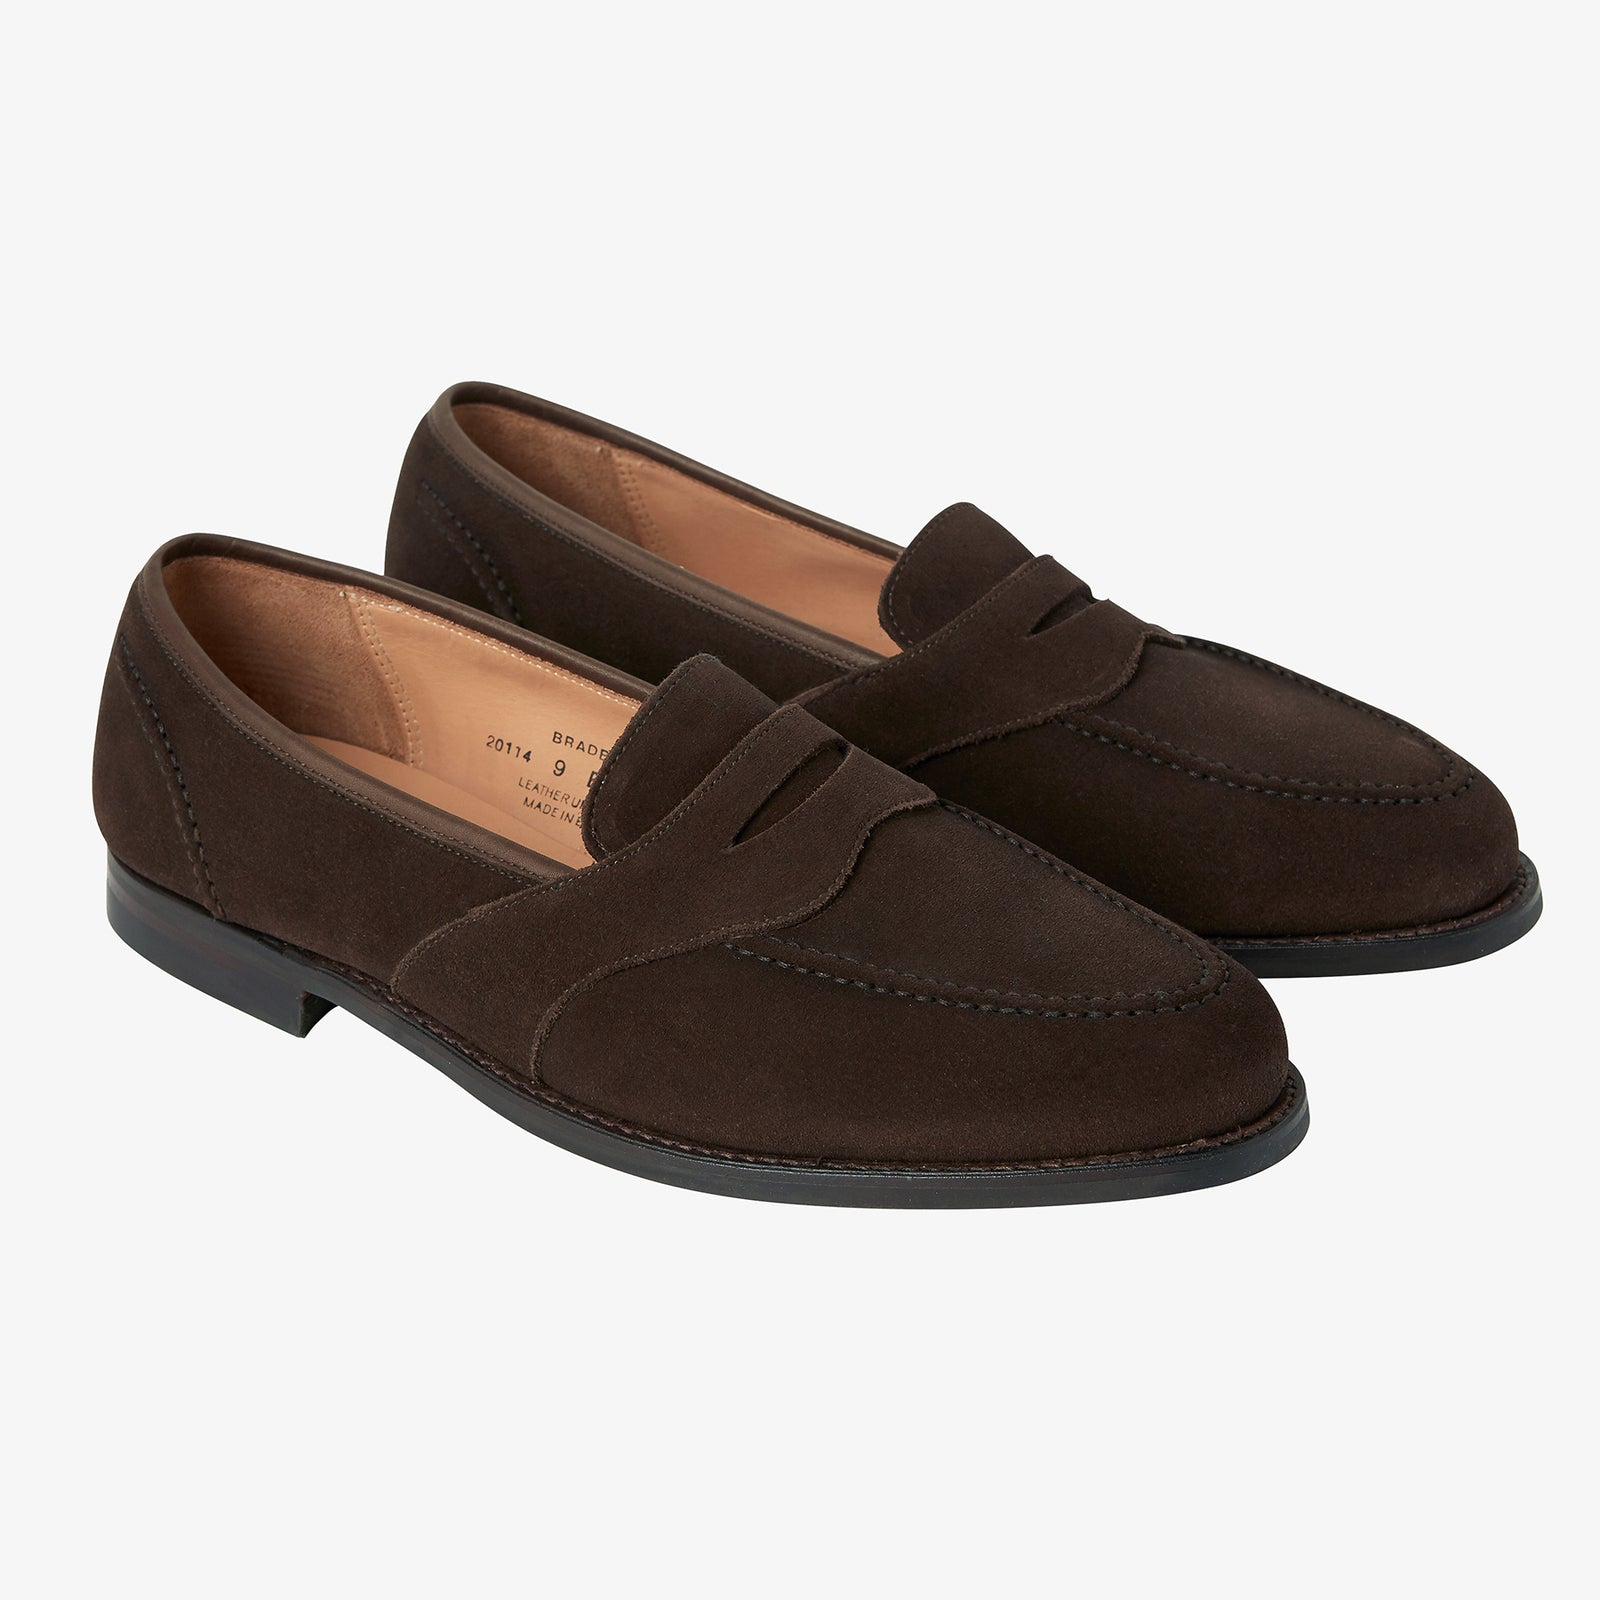 Crockett & Jones Bradbourne Loafer Brown Suede City Sole